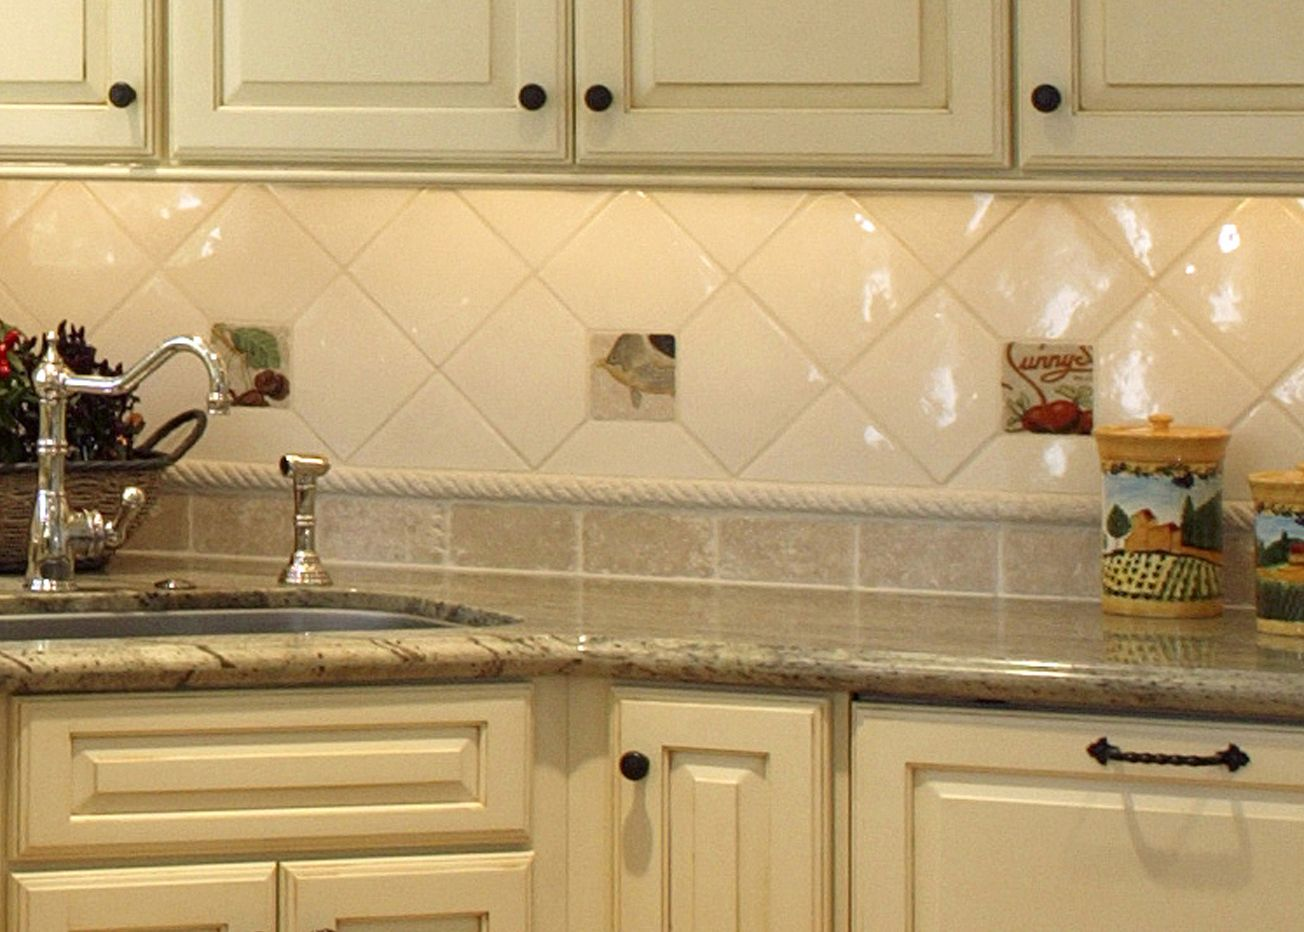 Kitchen Tile Backsplashes | Kitchen: Kitchen Tile Backsplash Design Ideas  Hiplyfe 0010, Kitchen .